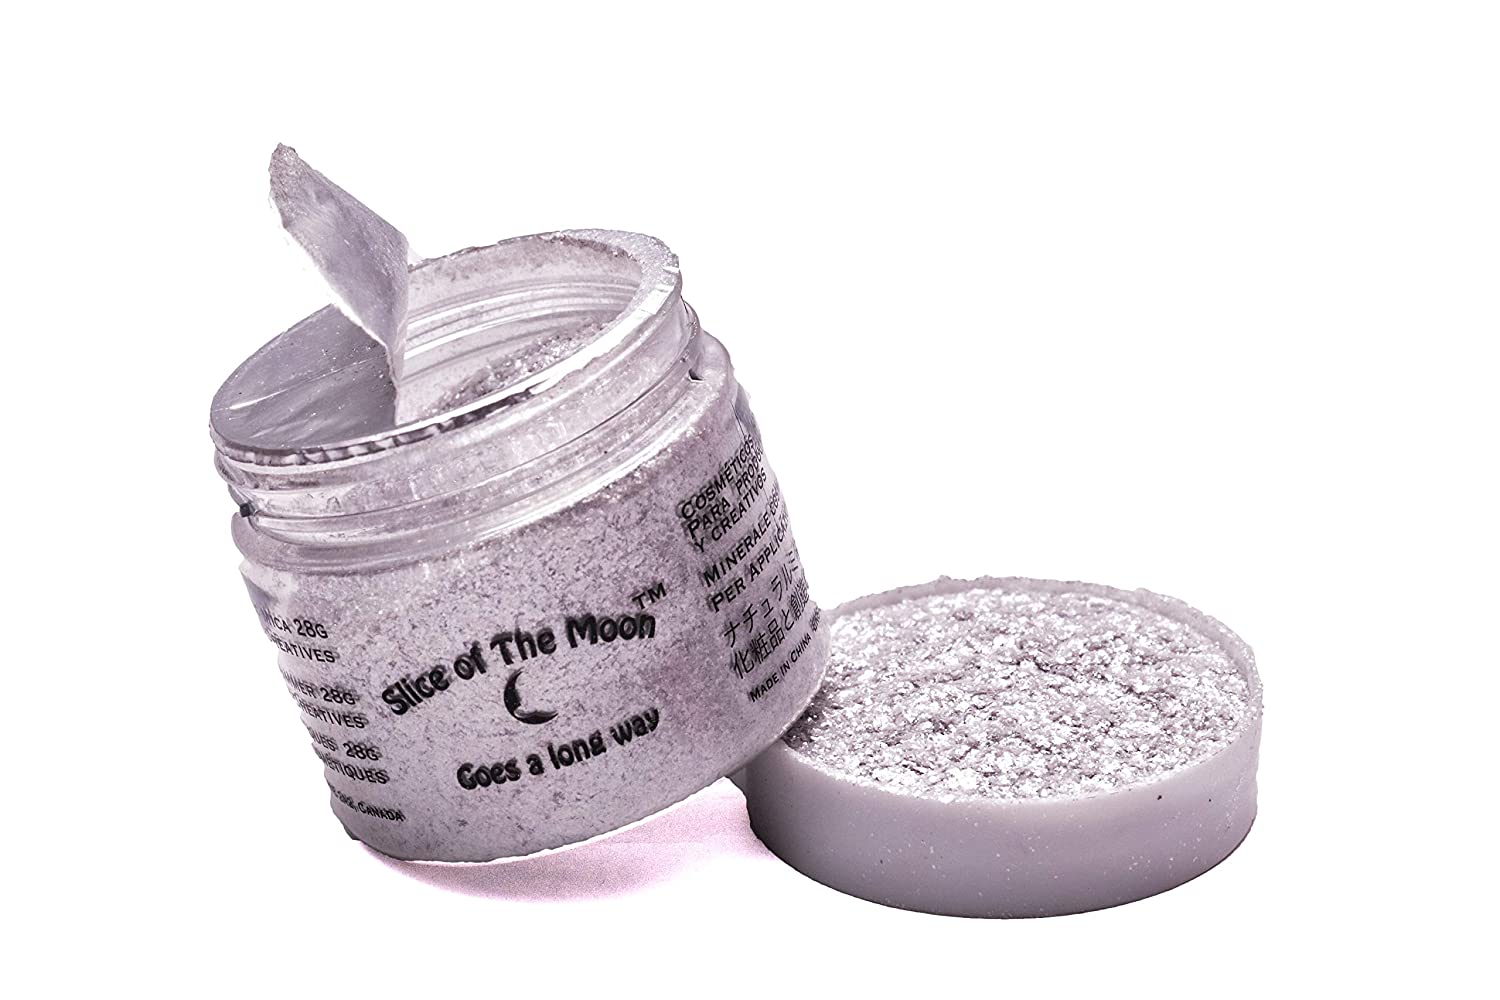 Crystal Flashing Pearl Mica 1oz, High Glitter Factor, Cosmetic Mica, Slice of the Moon EKS Entertainment Group LYSB008H3NJOQ-ELECTRNCS